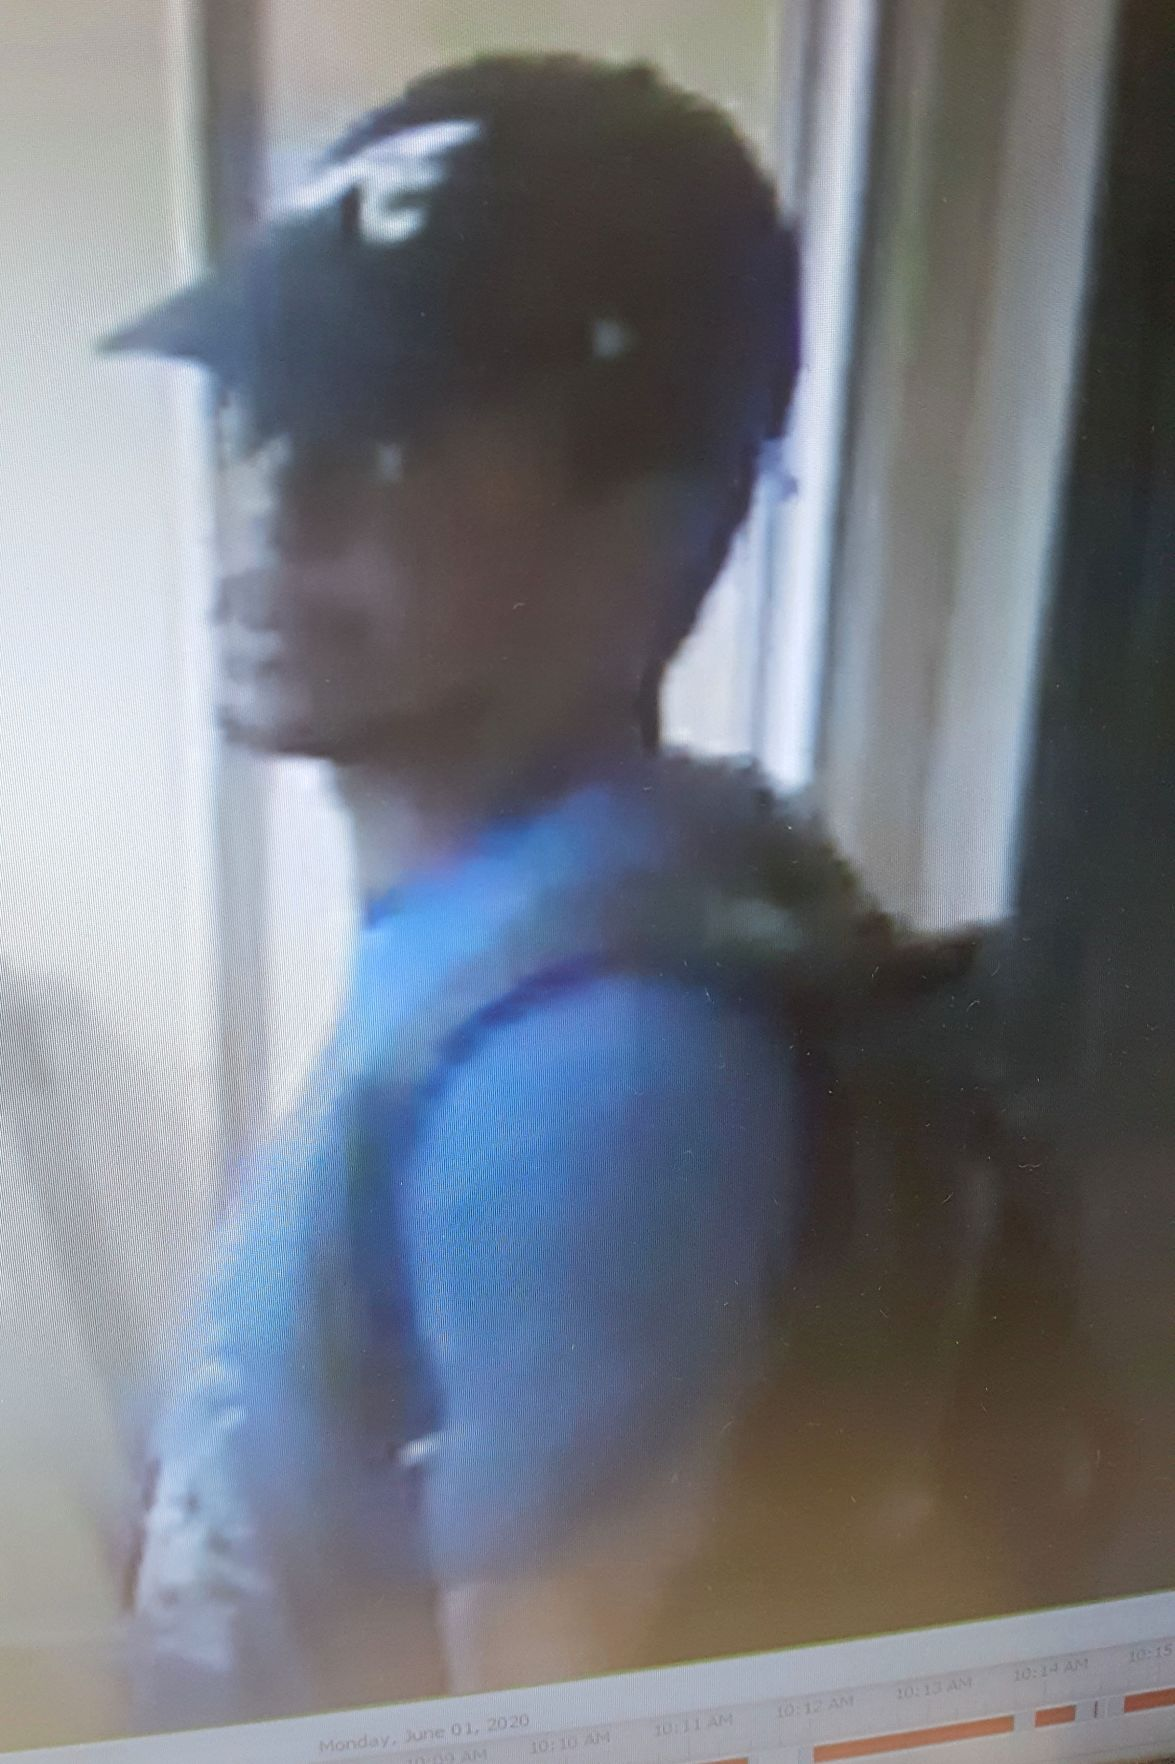 062420_MNS_APD_serial_001 suspect